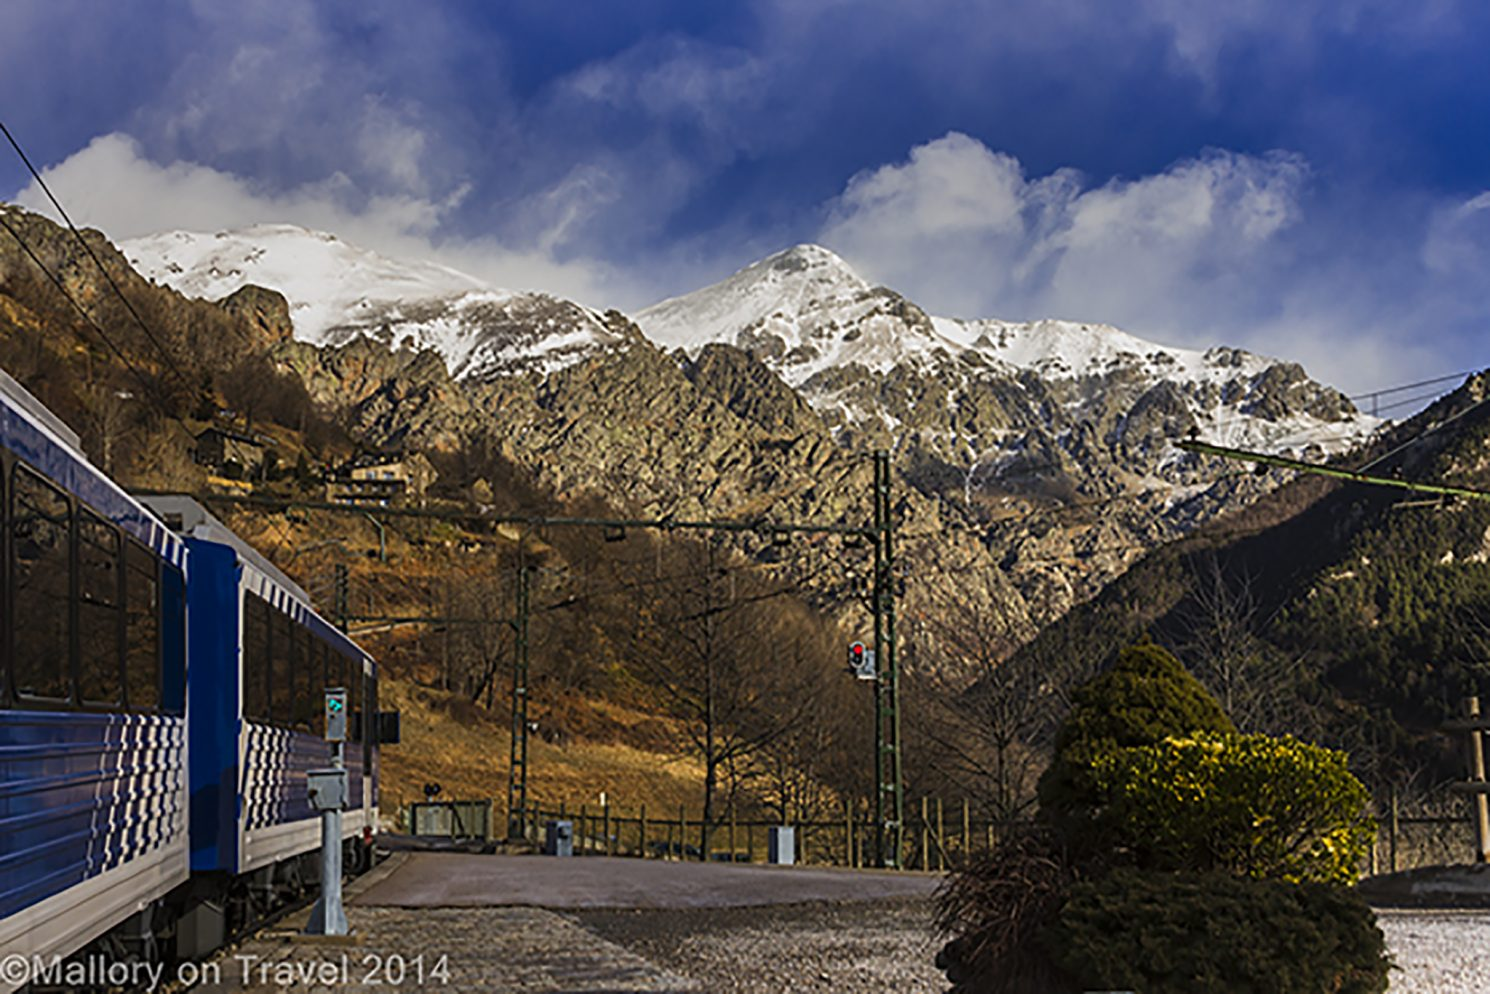 Train to Vall de Núria in Costa Brava in the Catalan Pyrenees, Spain on Mallory on Travel adventure, adventure travel, photography Iain Mallory-300 nuria_valley